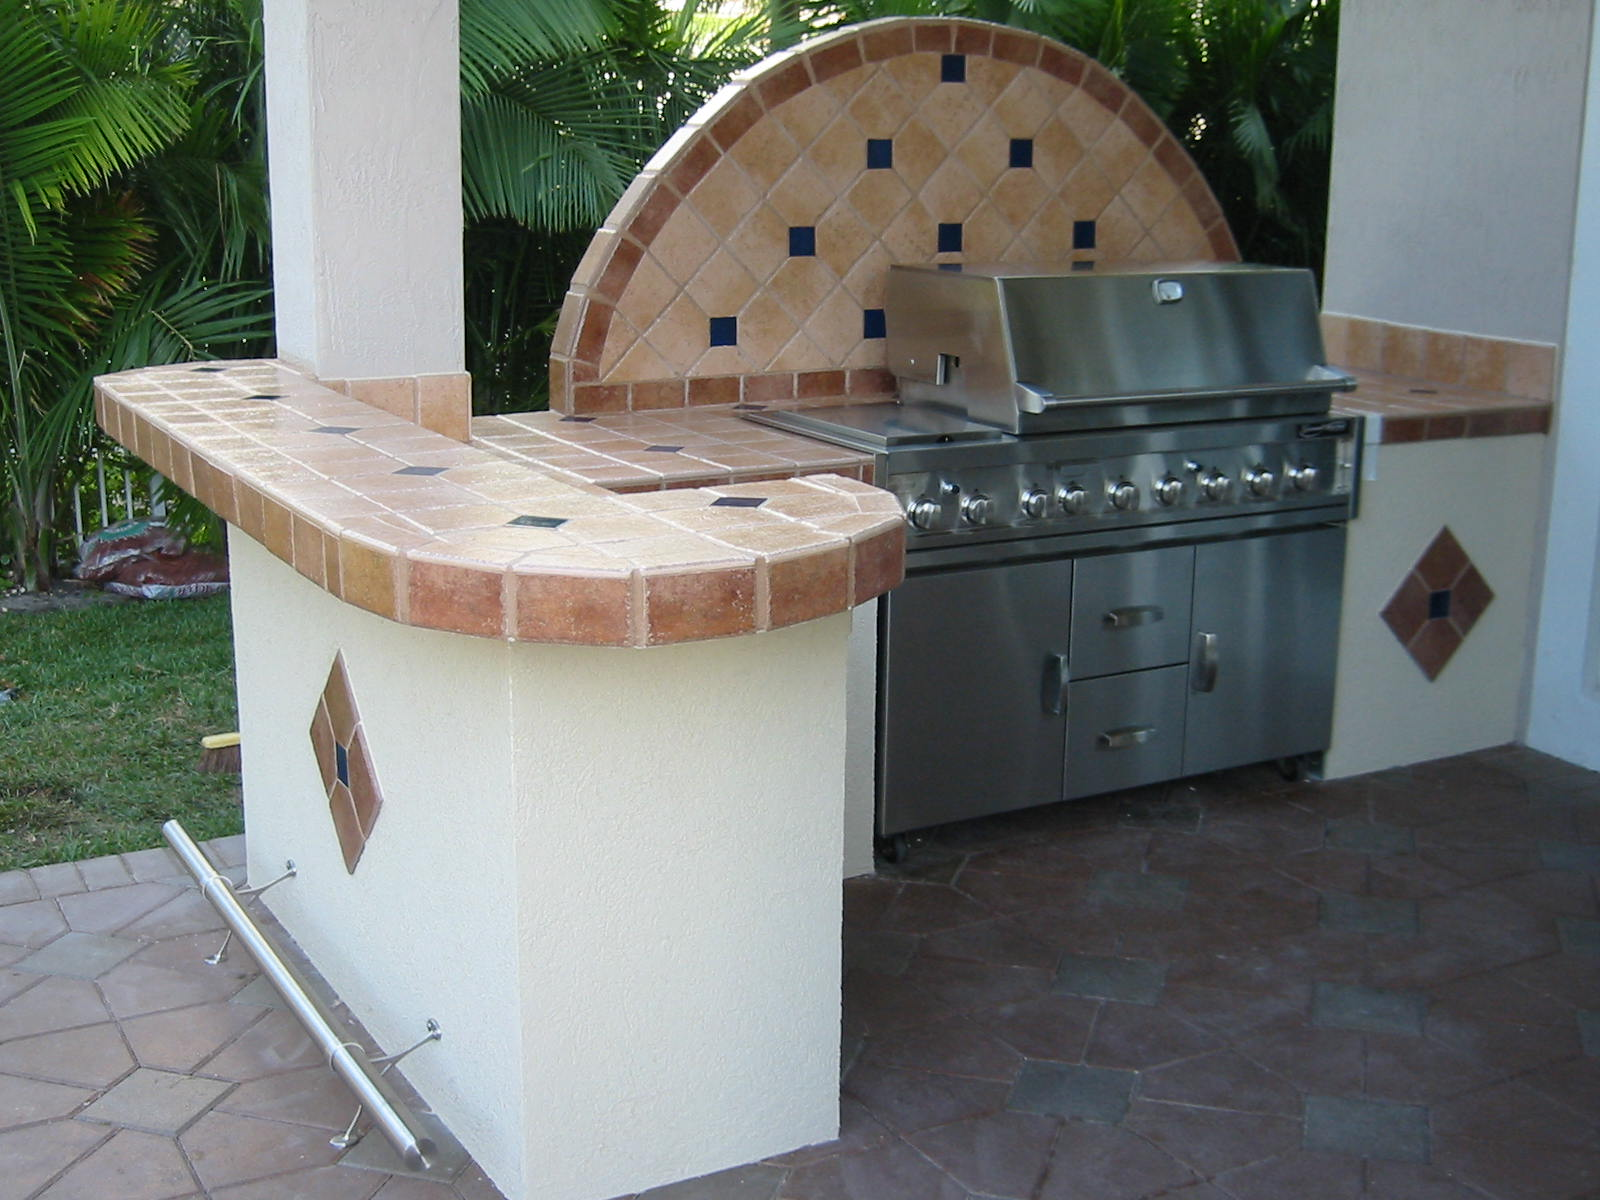 Outdoor Kitchen Design Images | GRILL-REPAIR.COM barbeque ... on Built In Grill Backyard id=67960